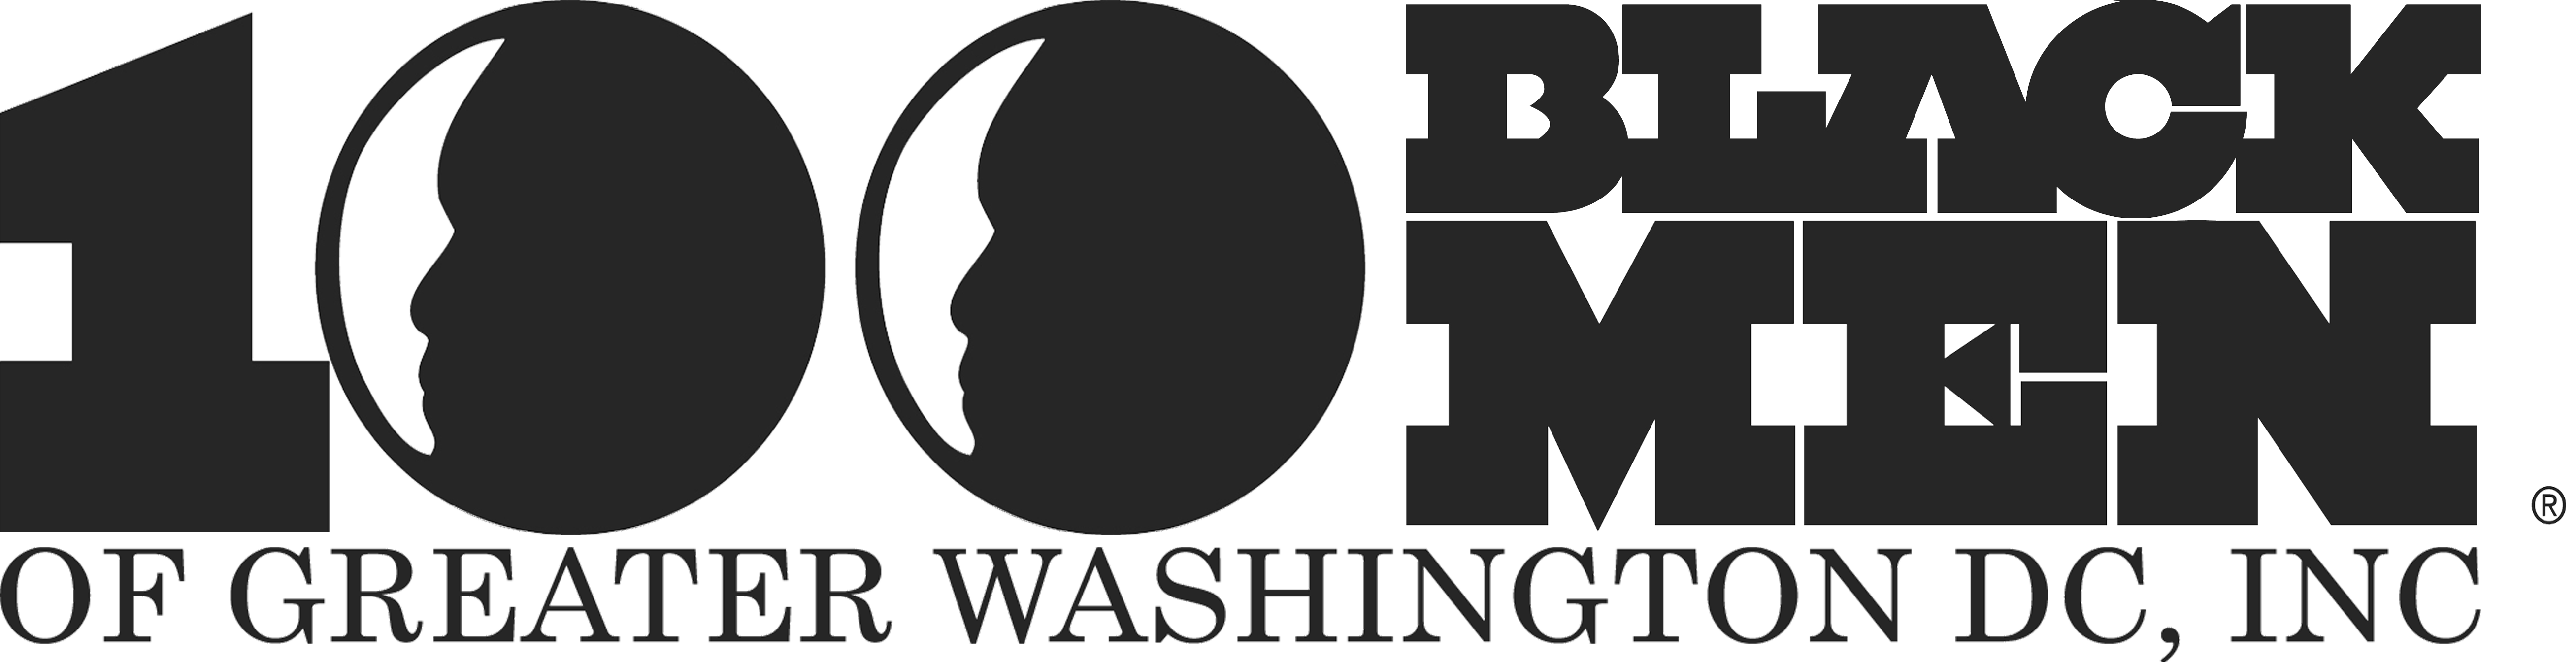 100 Black Men of Greater Washington